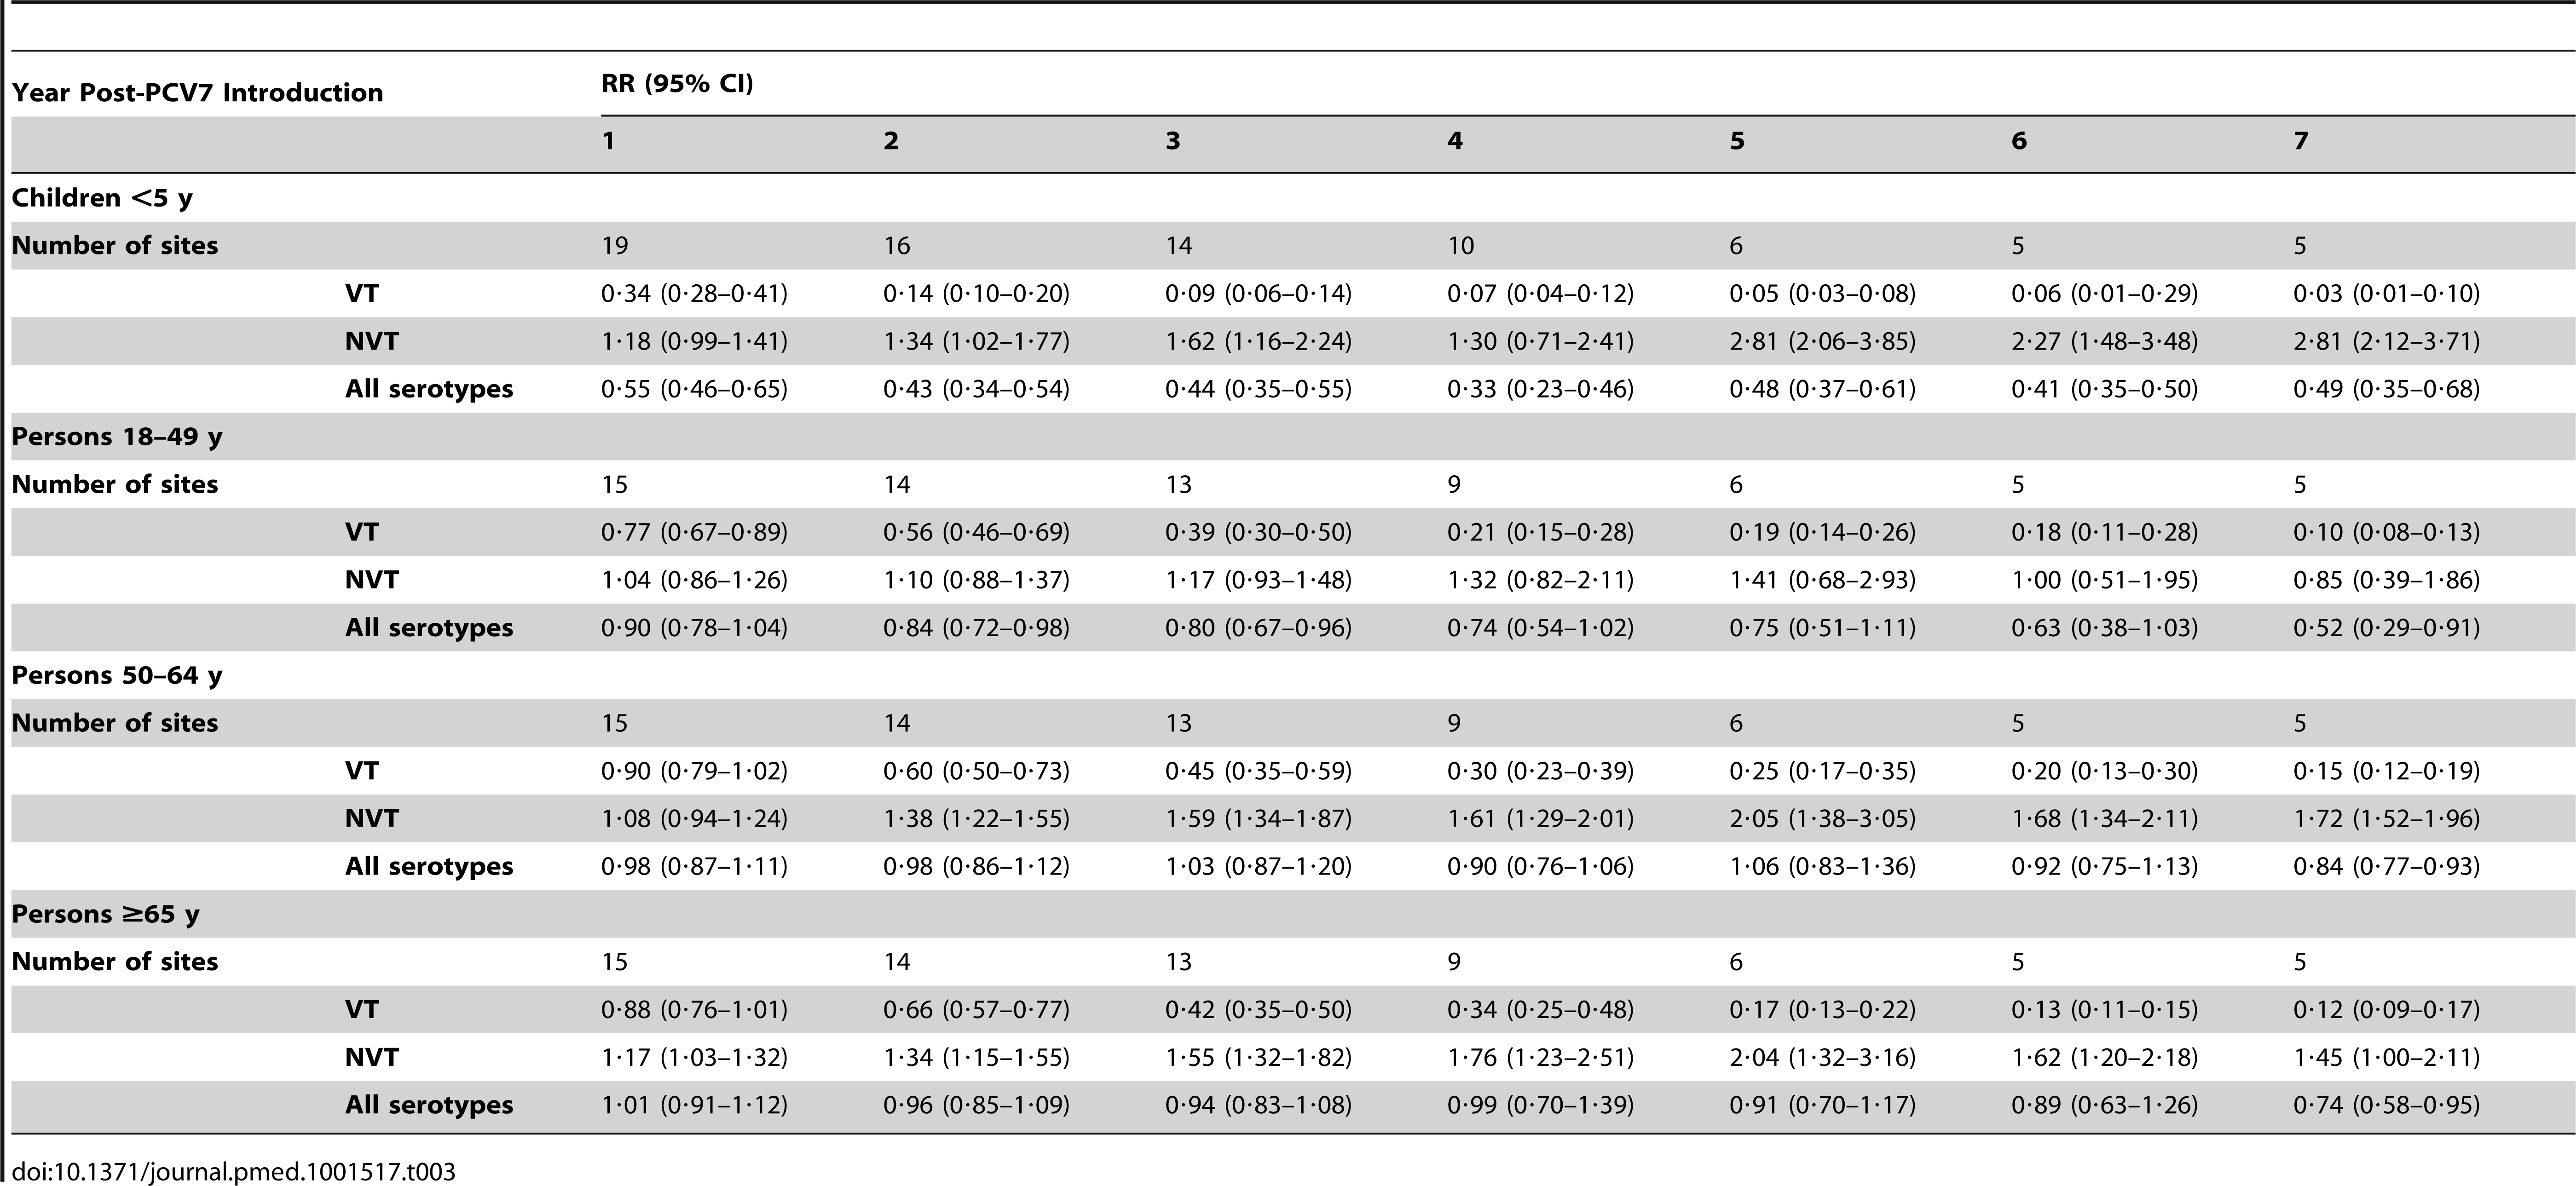 Invasive pneumococcal disease summary rate ratios from random effects meta-analysis, comparing observed over expected rates, by age, serotype group, and post-PCV7 introduction year for all sites.